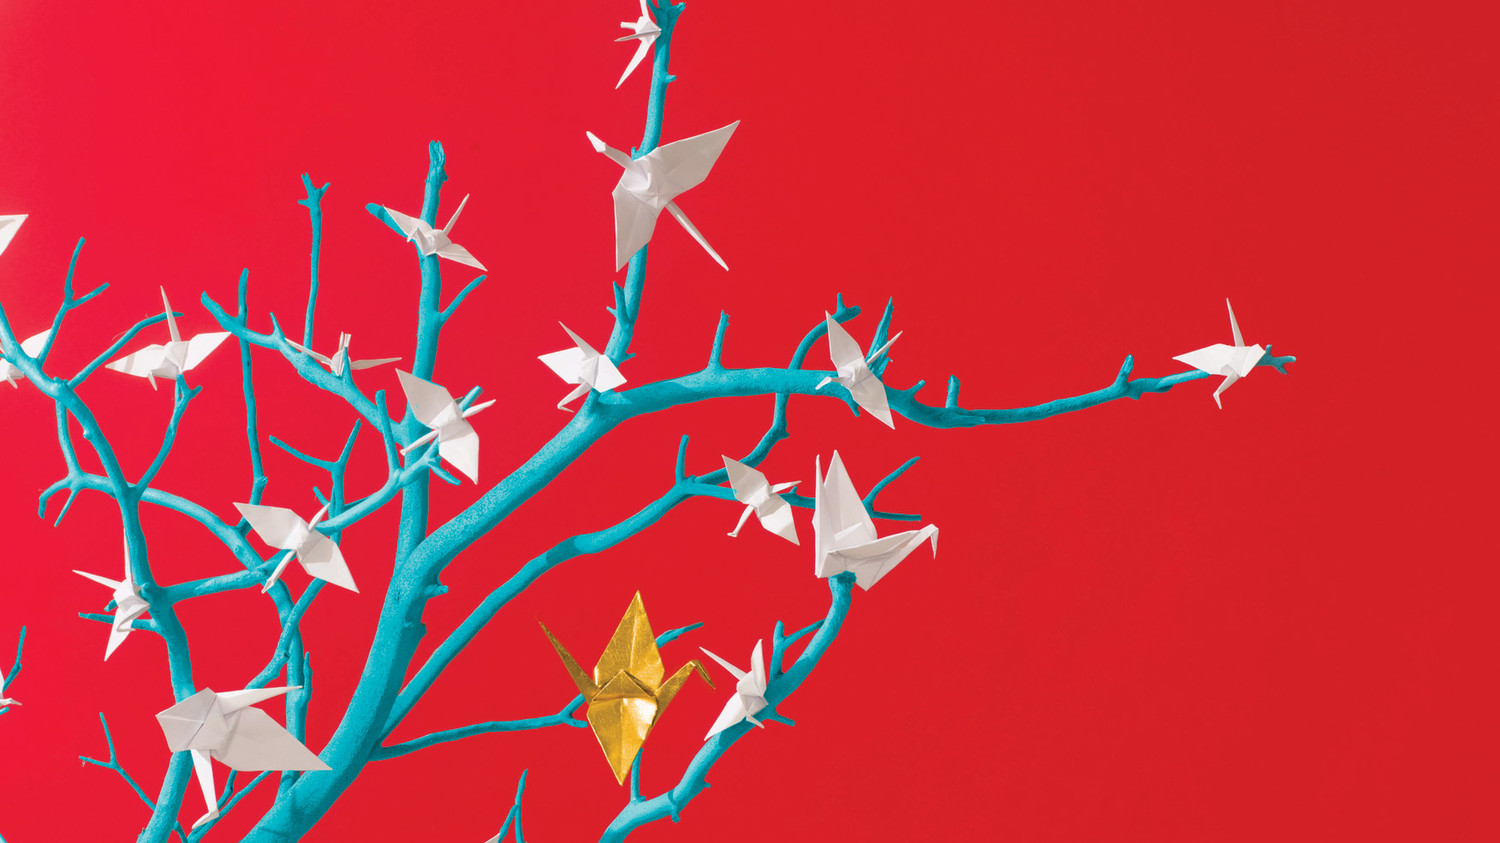 lucky-wedding-ideas-paper-crane-tree-072-d112929.jpg